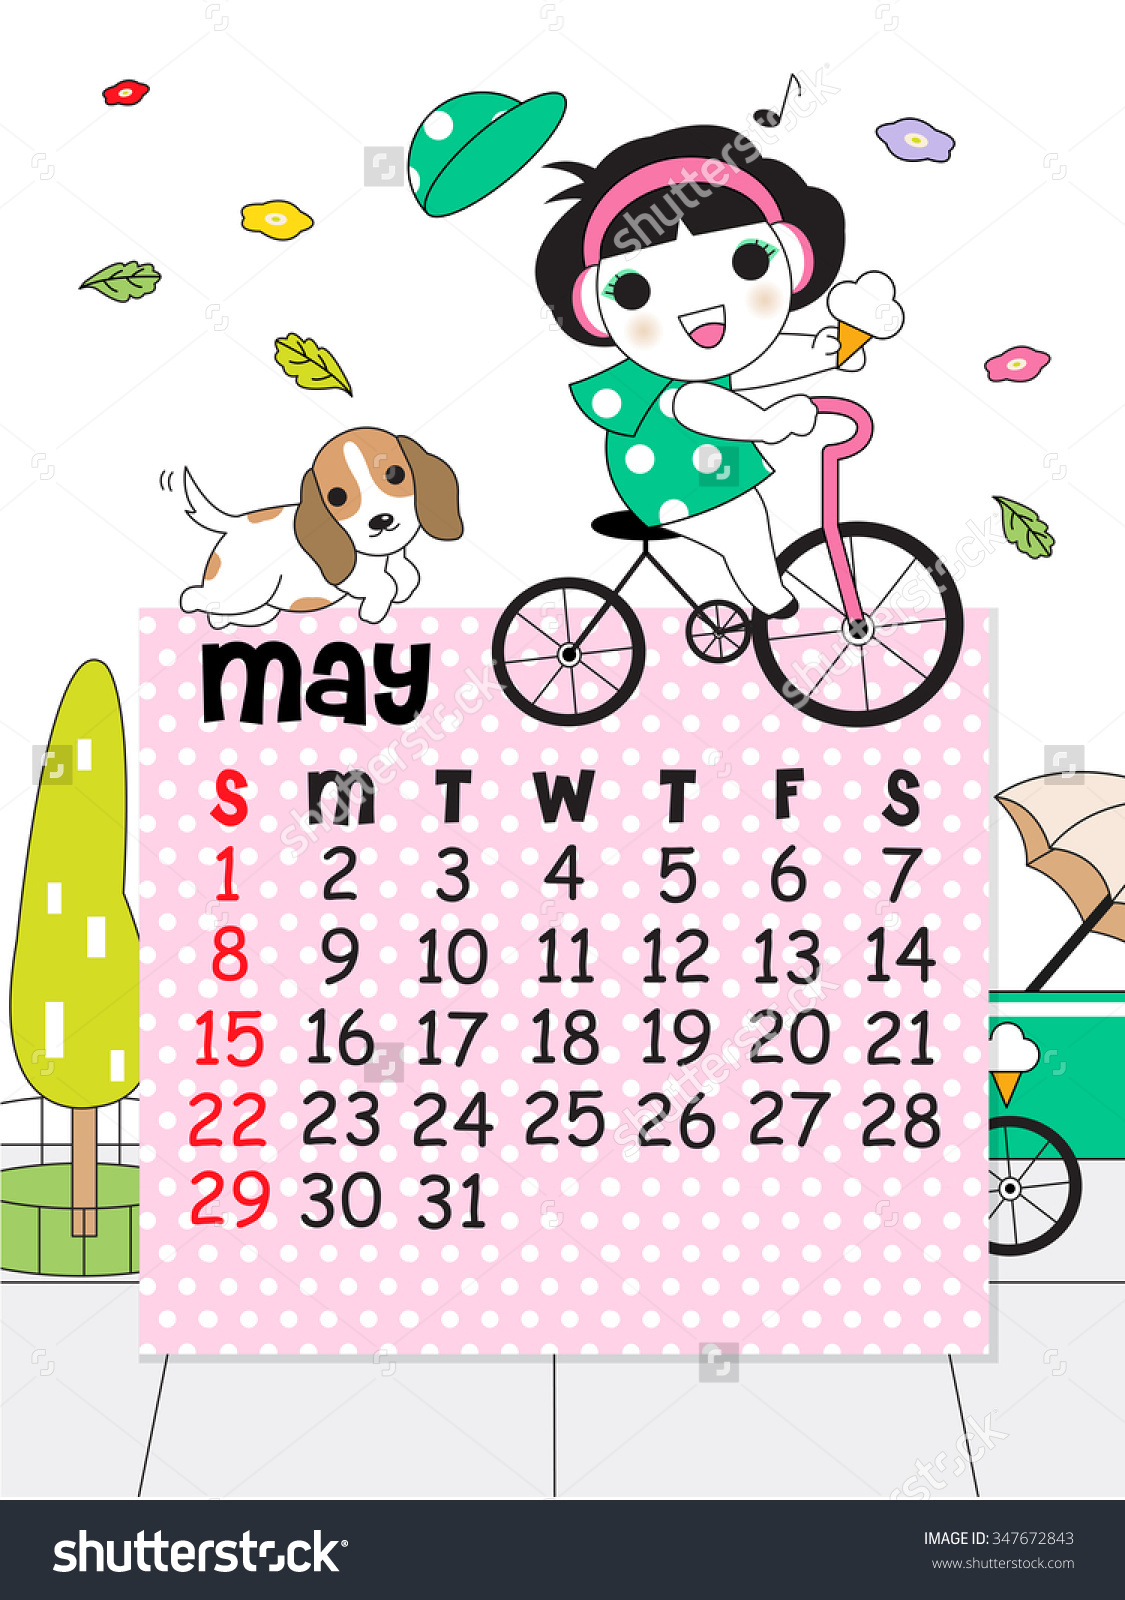 Pretty may 2016 calendar clipart graphic royalty free May Calendar Template 2016 Cute Character Illustration - 347672843 ... graphic royalty free